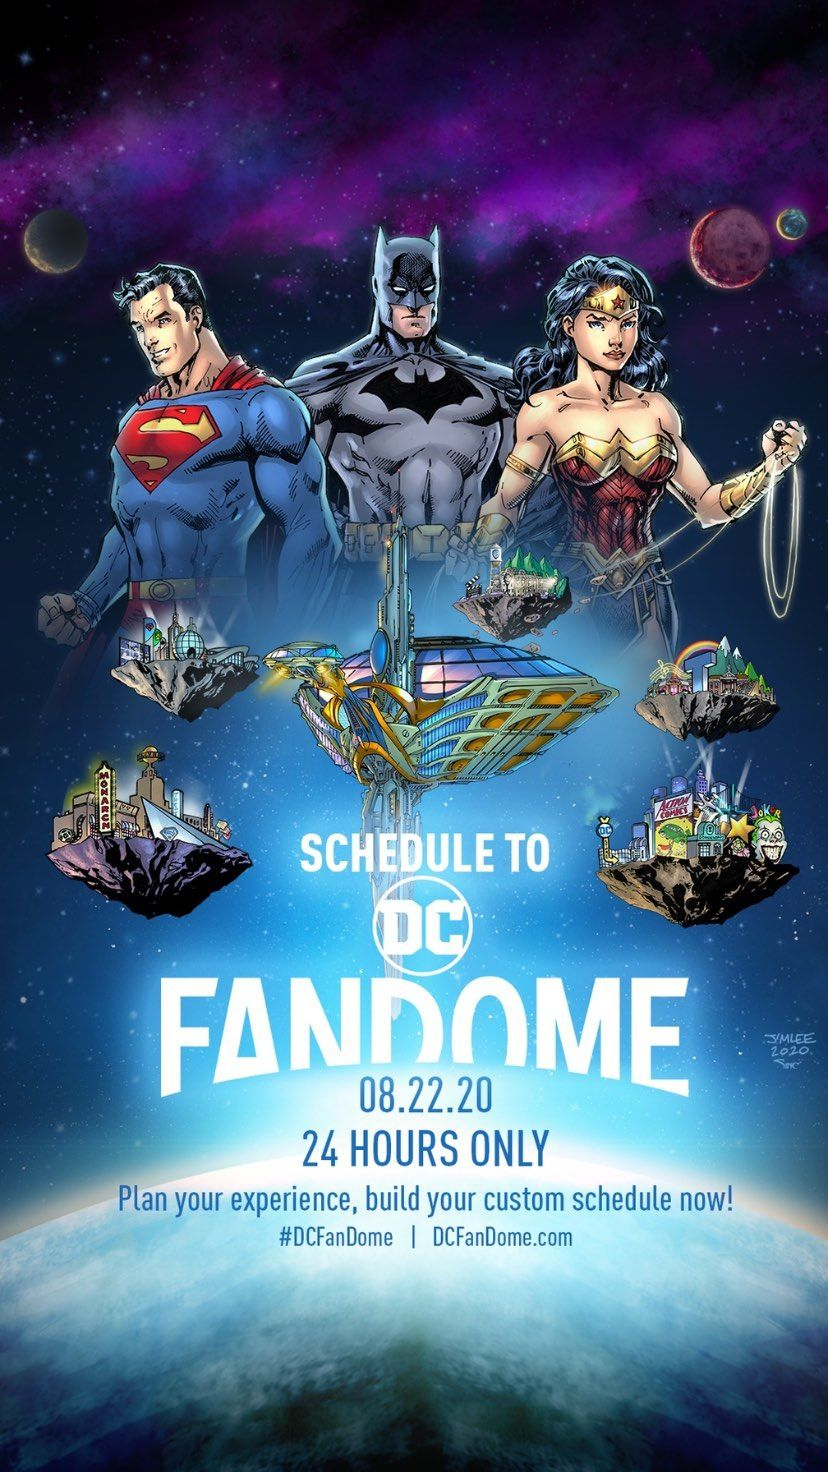 Pin By Rpf Media On Dc Fandome Dc Comics Heroes Comic Heroes Justice Society Of America